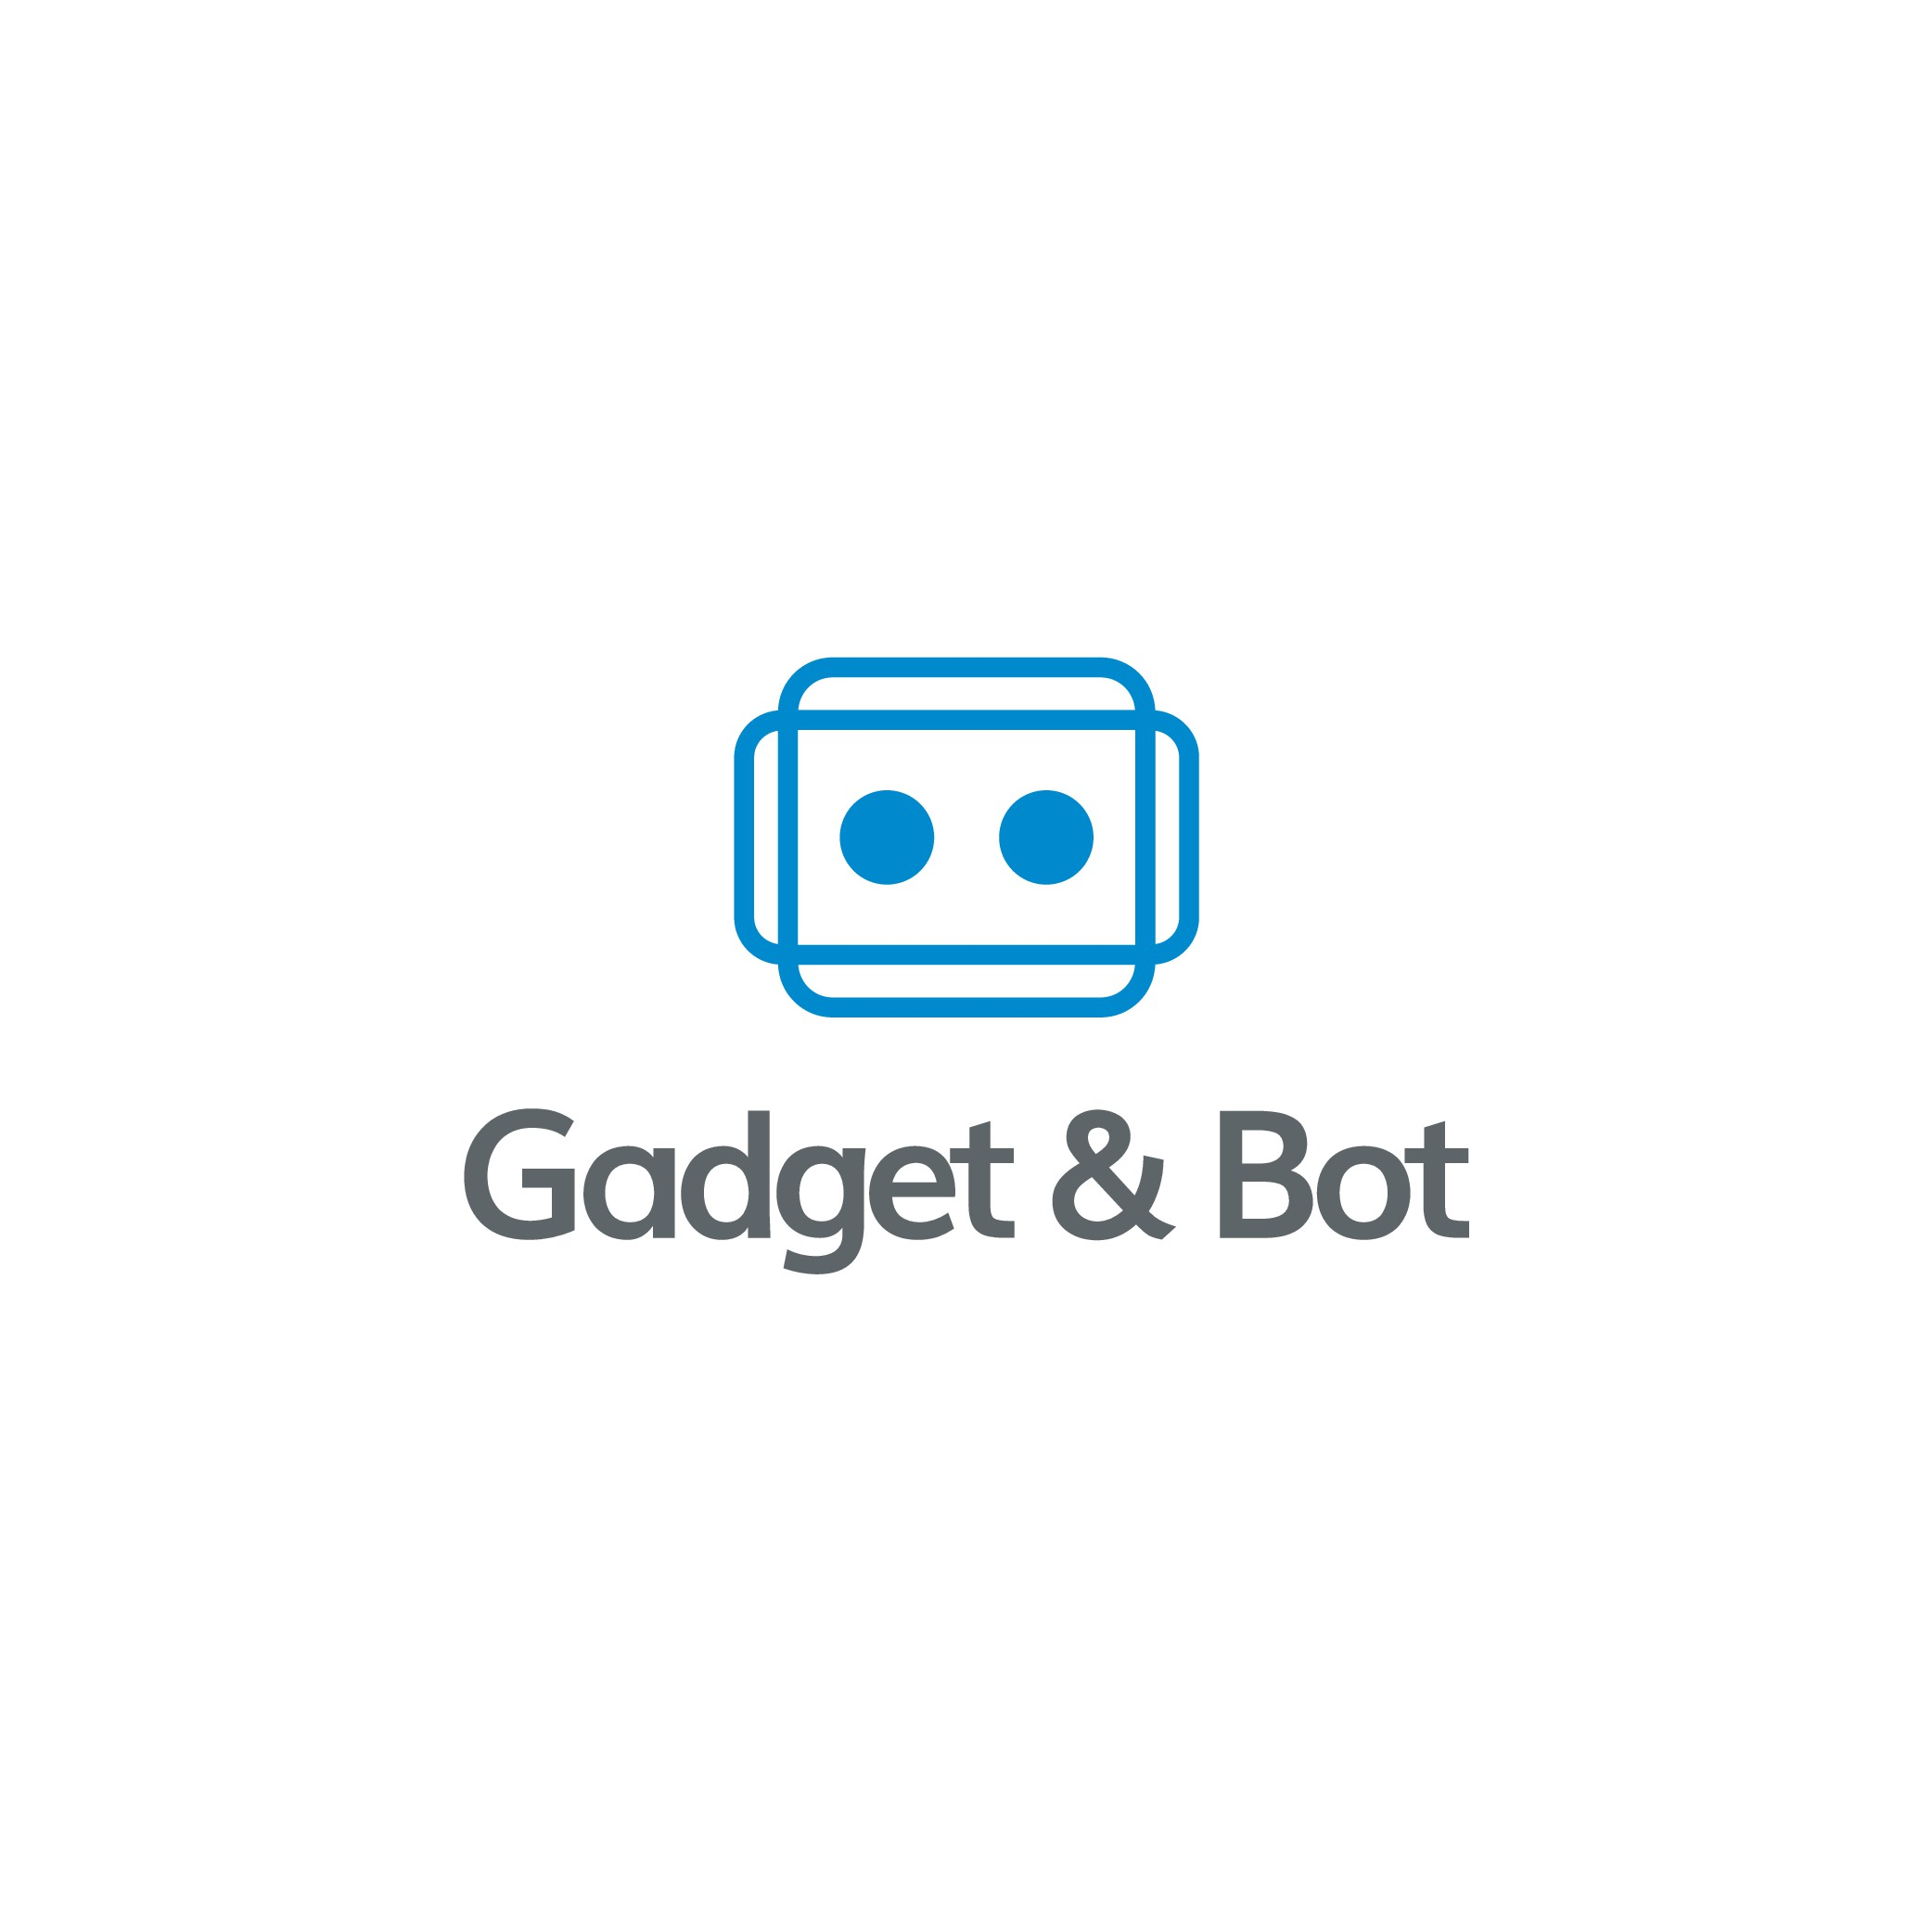 Gadget store needs an awesome new logo